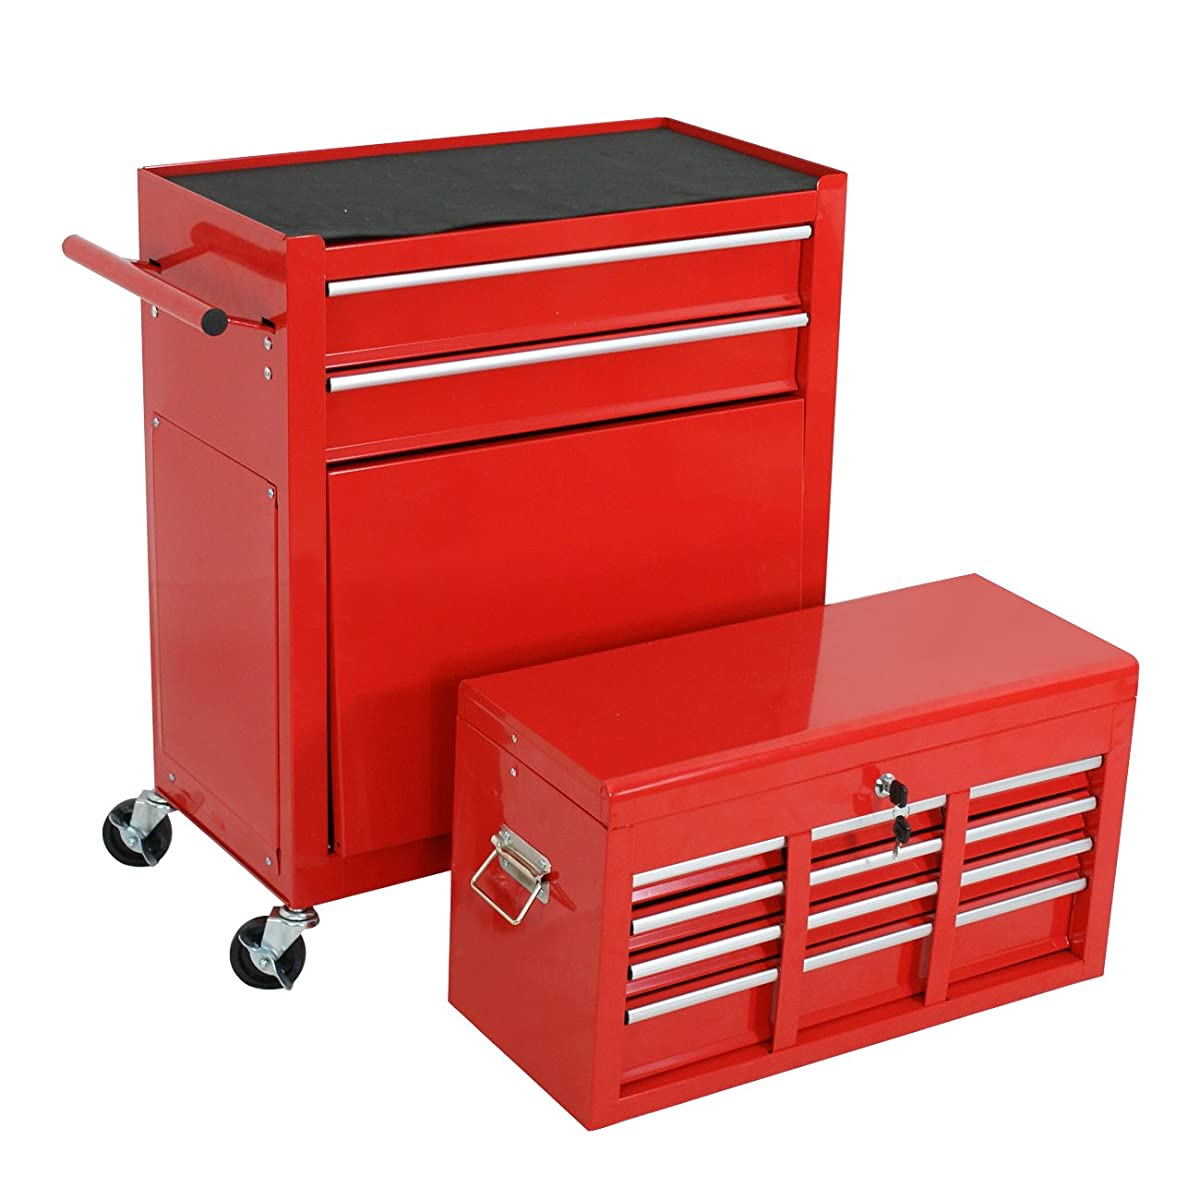 F2C Solid Steel 24 Inch Portable Tool Chest Box Storage Garage Toolbox 6 Drawers Top Chest